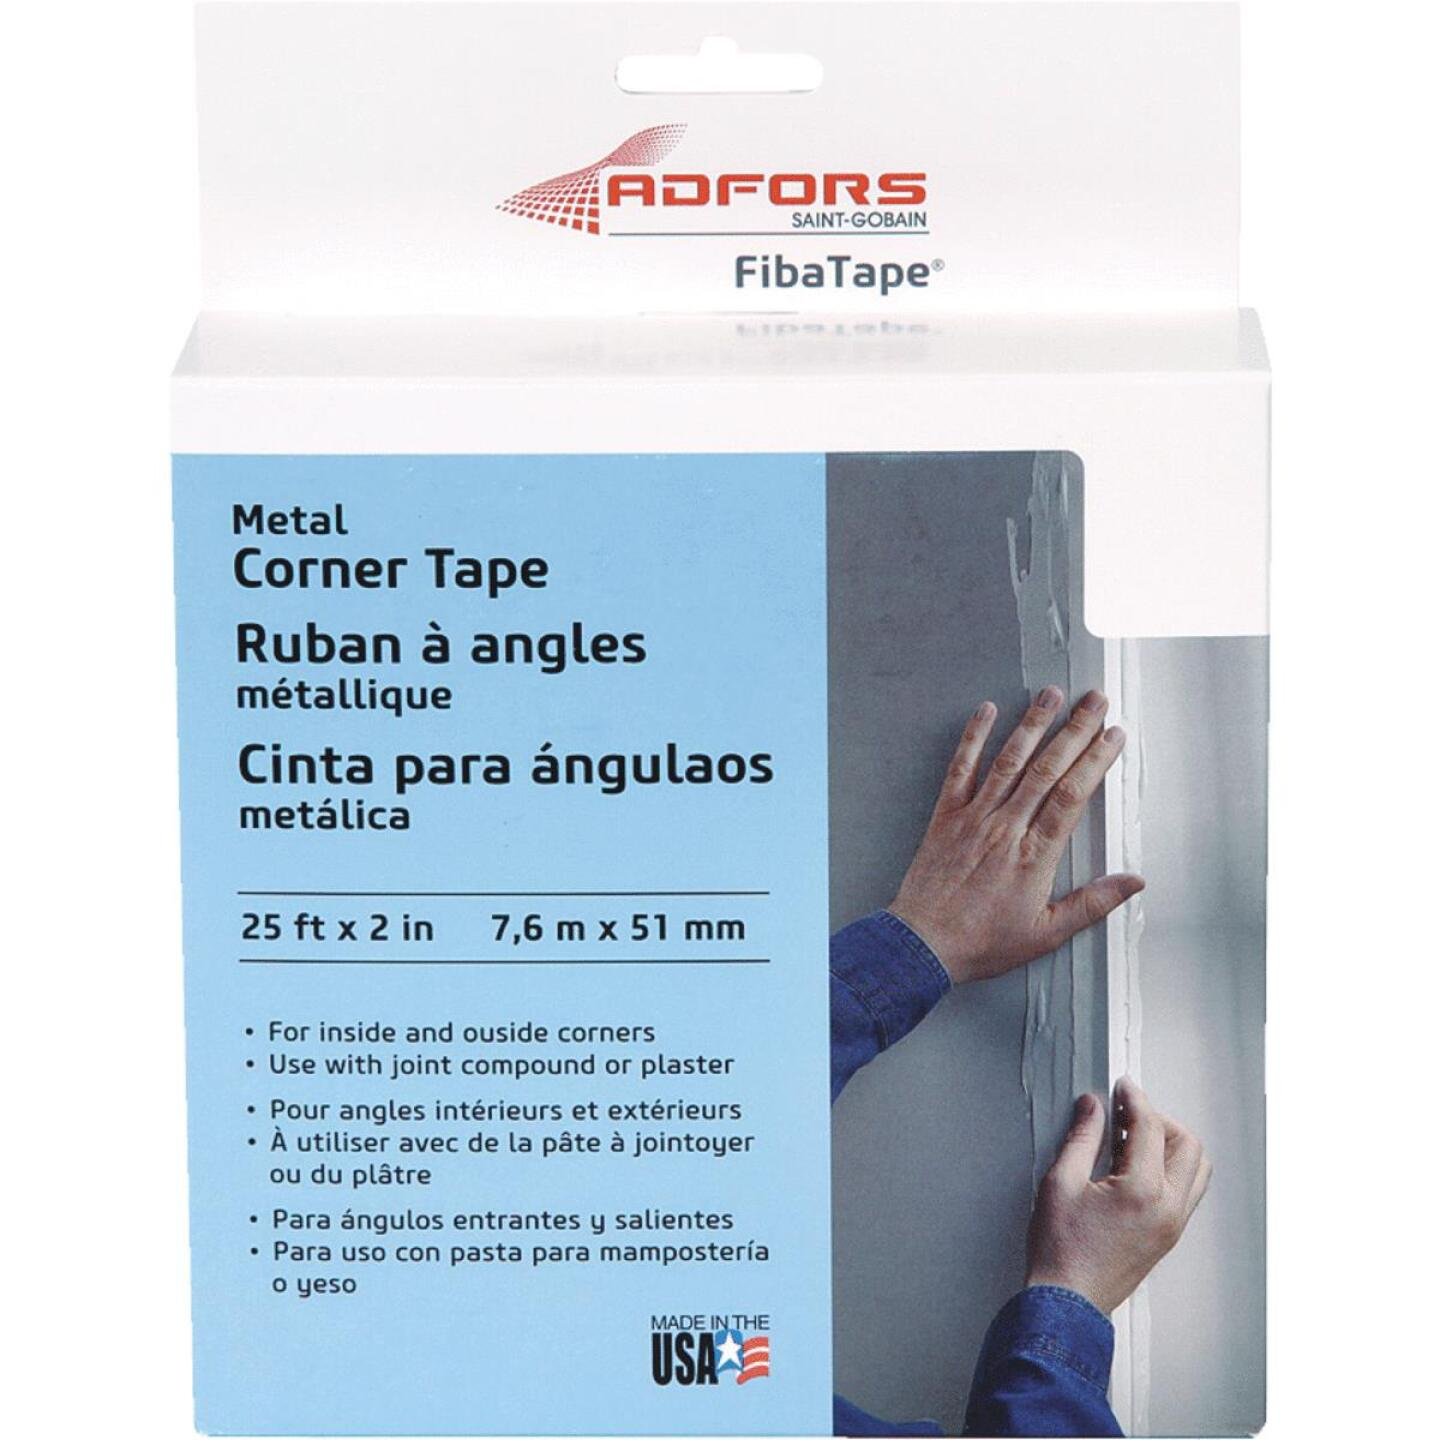 FibaTape 2 In. x 25 Ft. Steel Reinforced Corner Drywall Tape Image 1